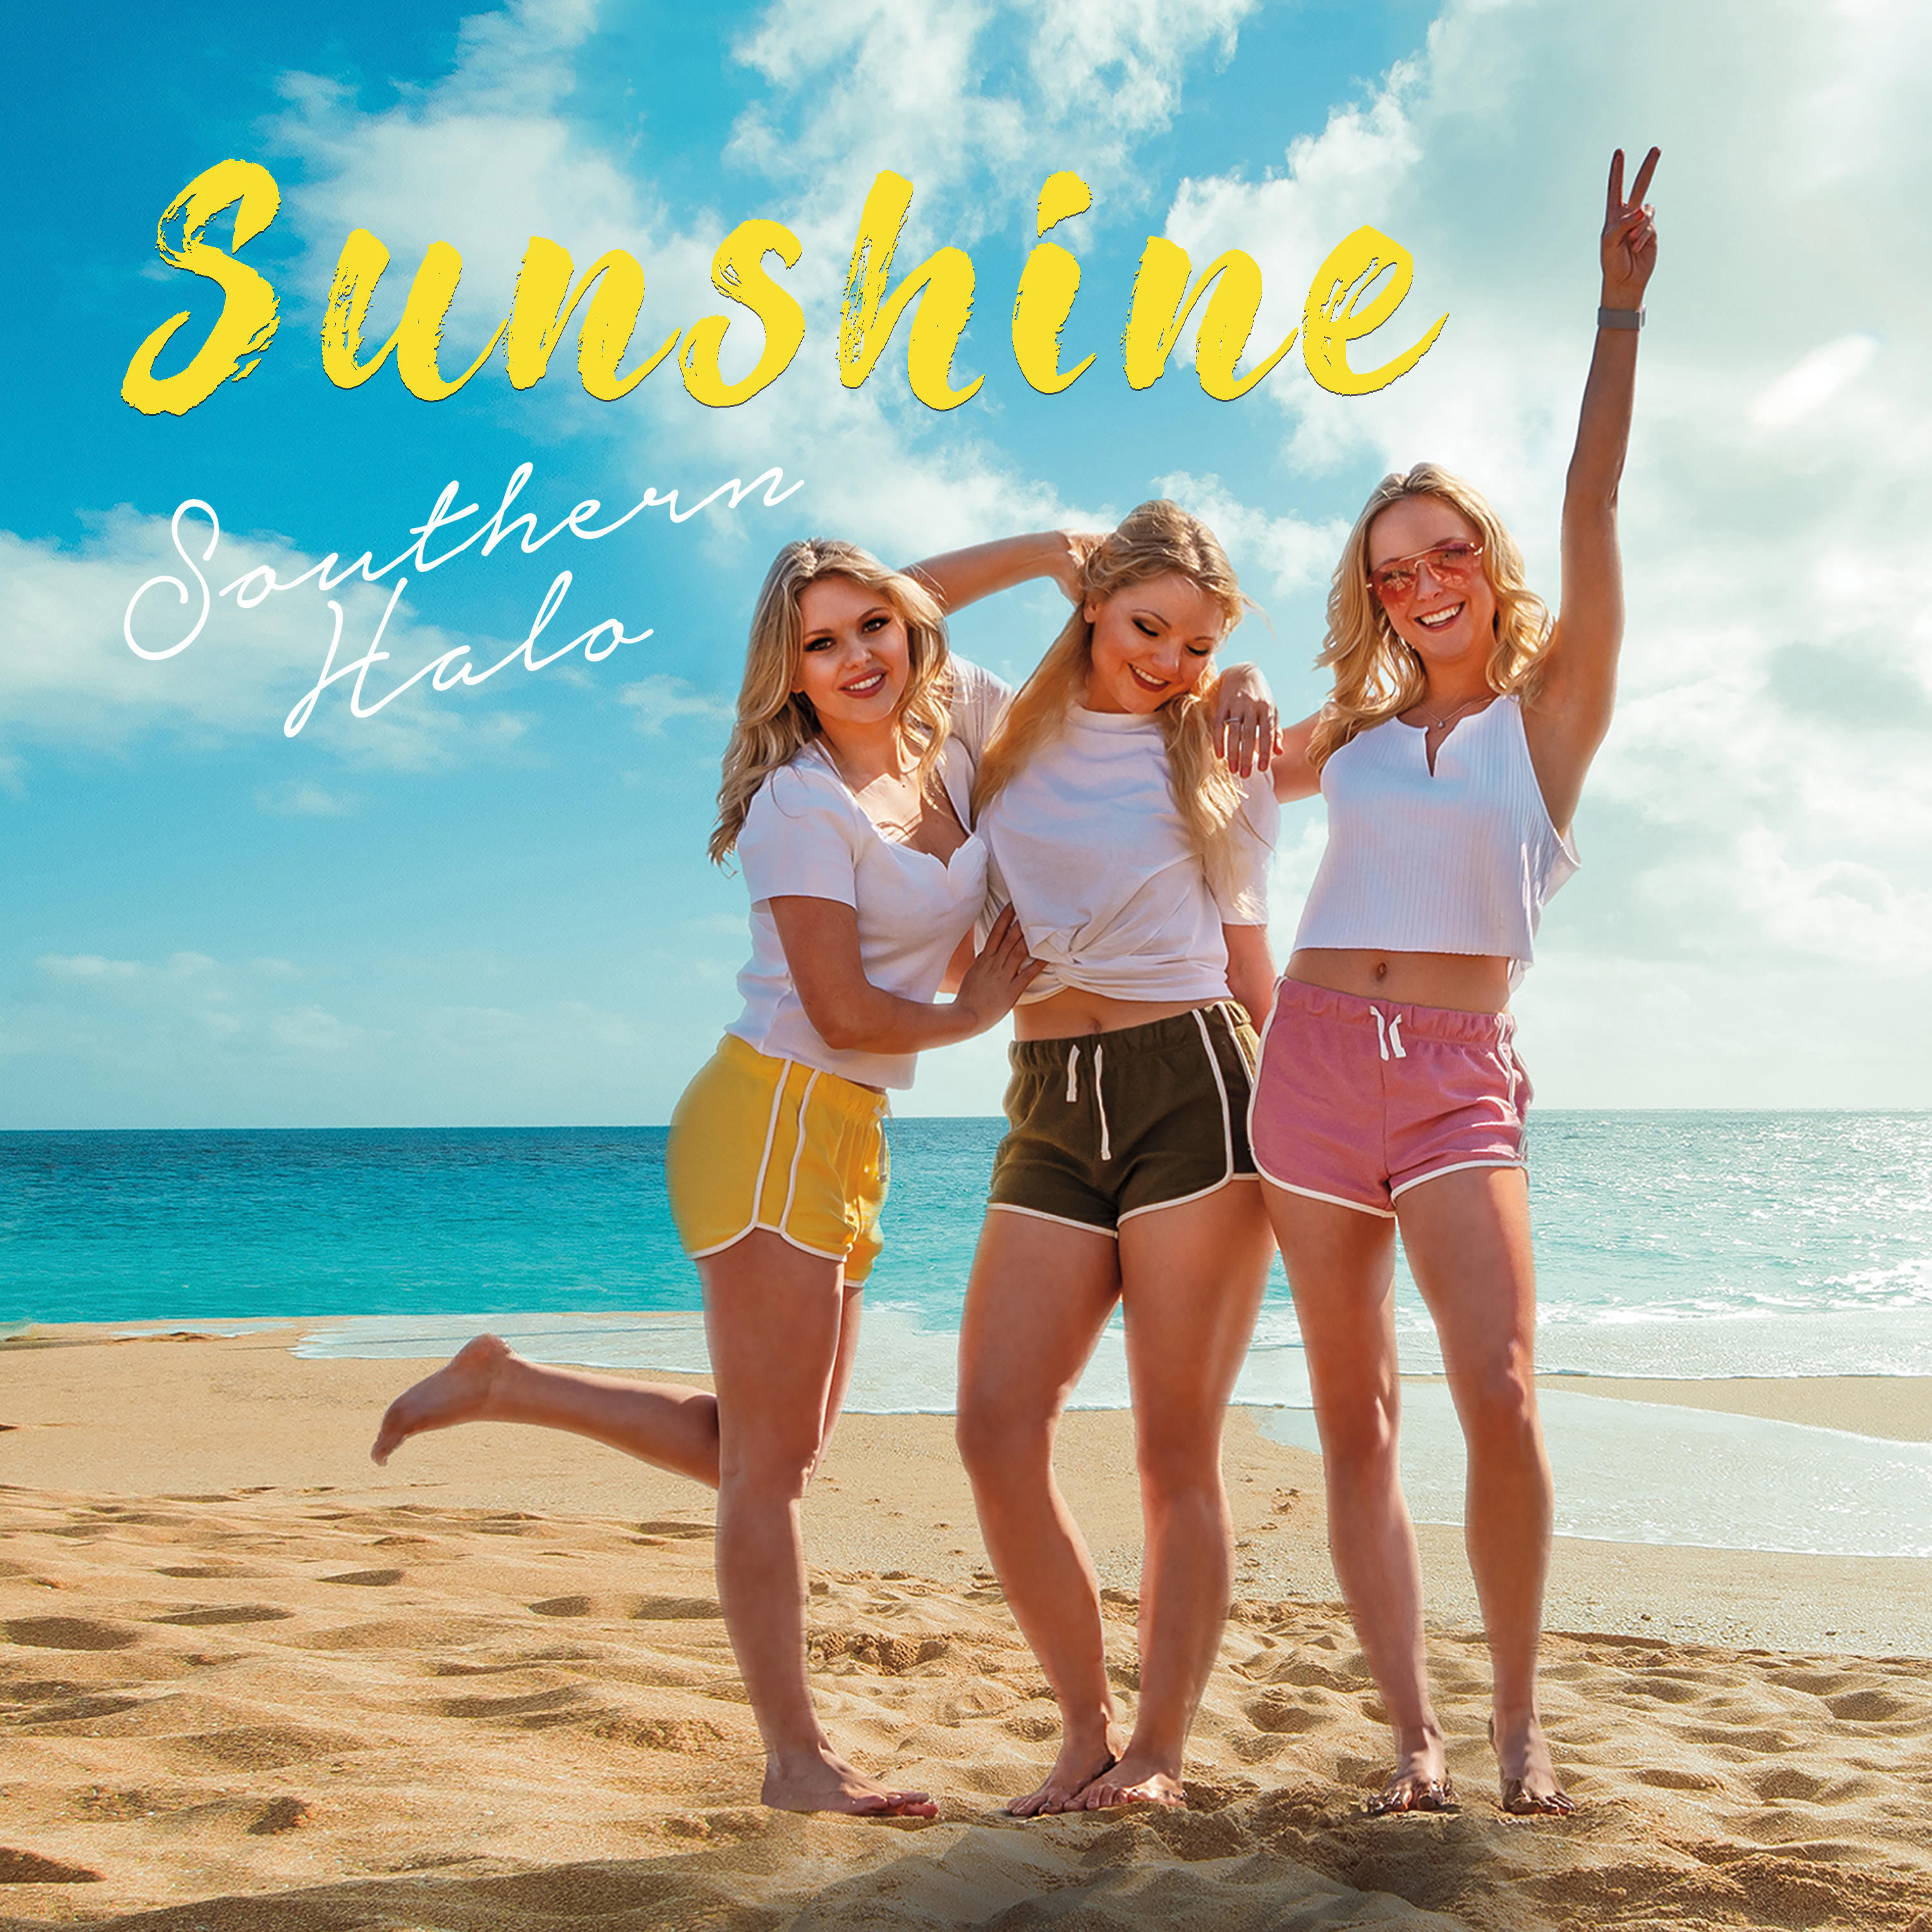 Sunshine front cover final